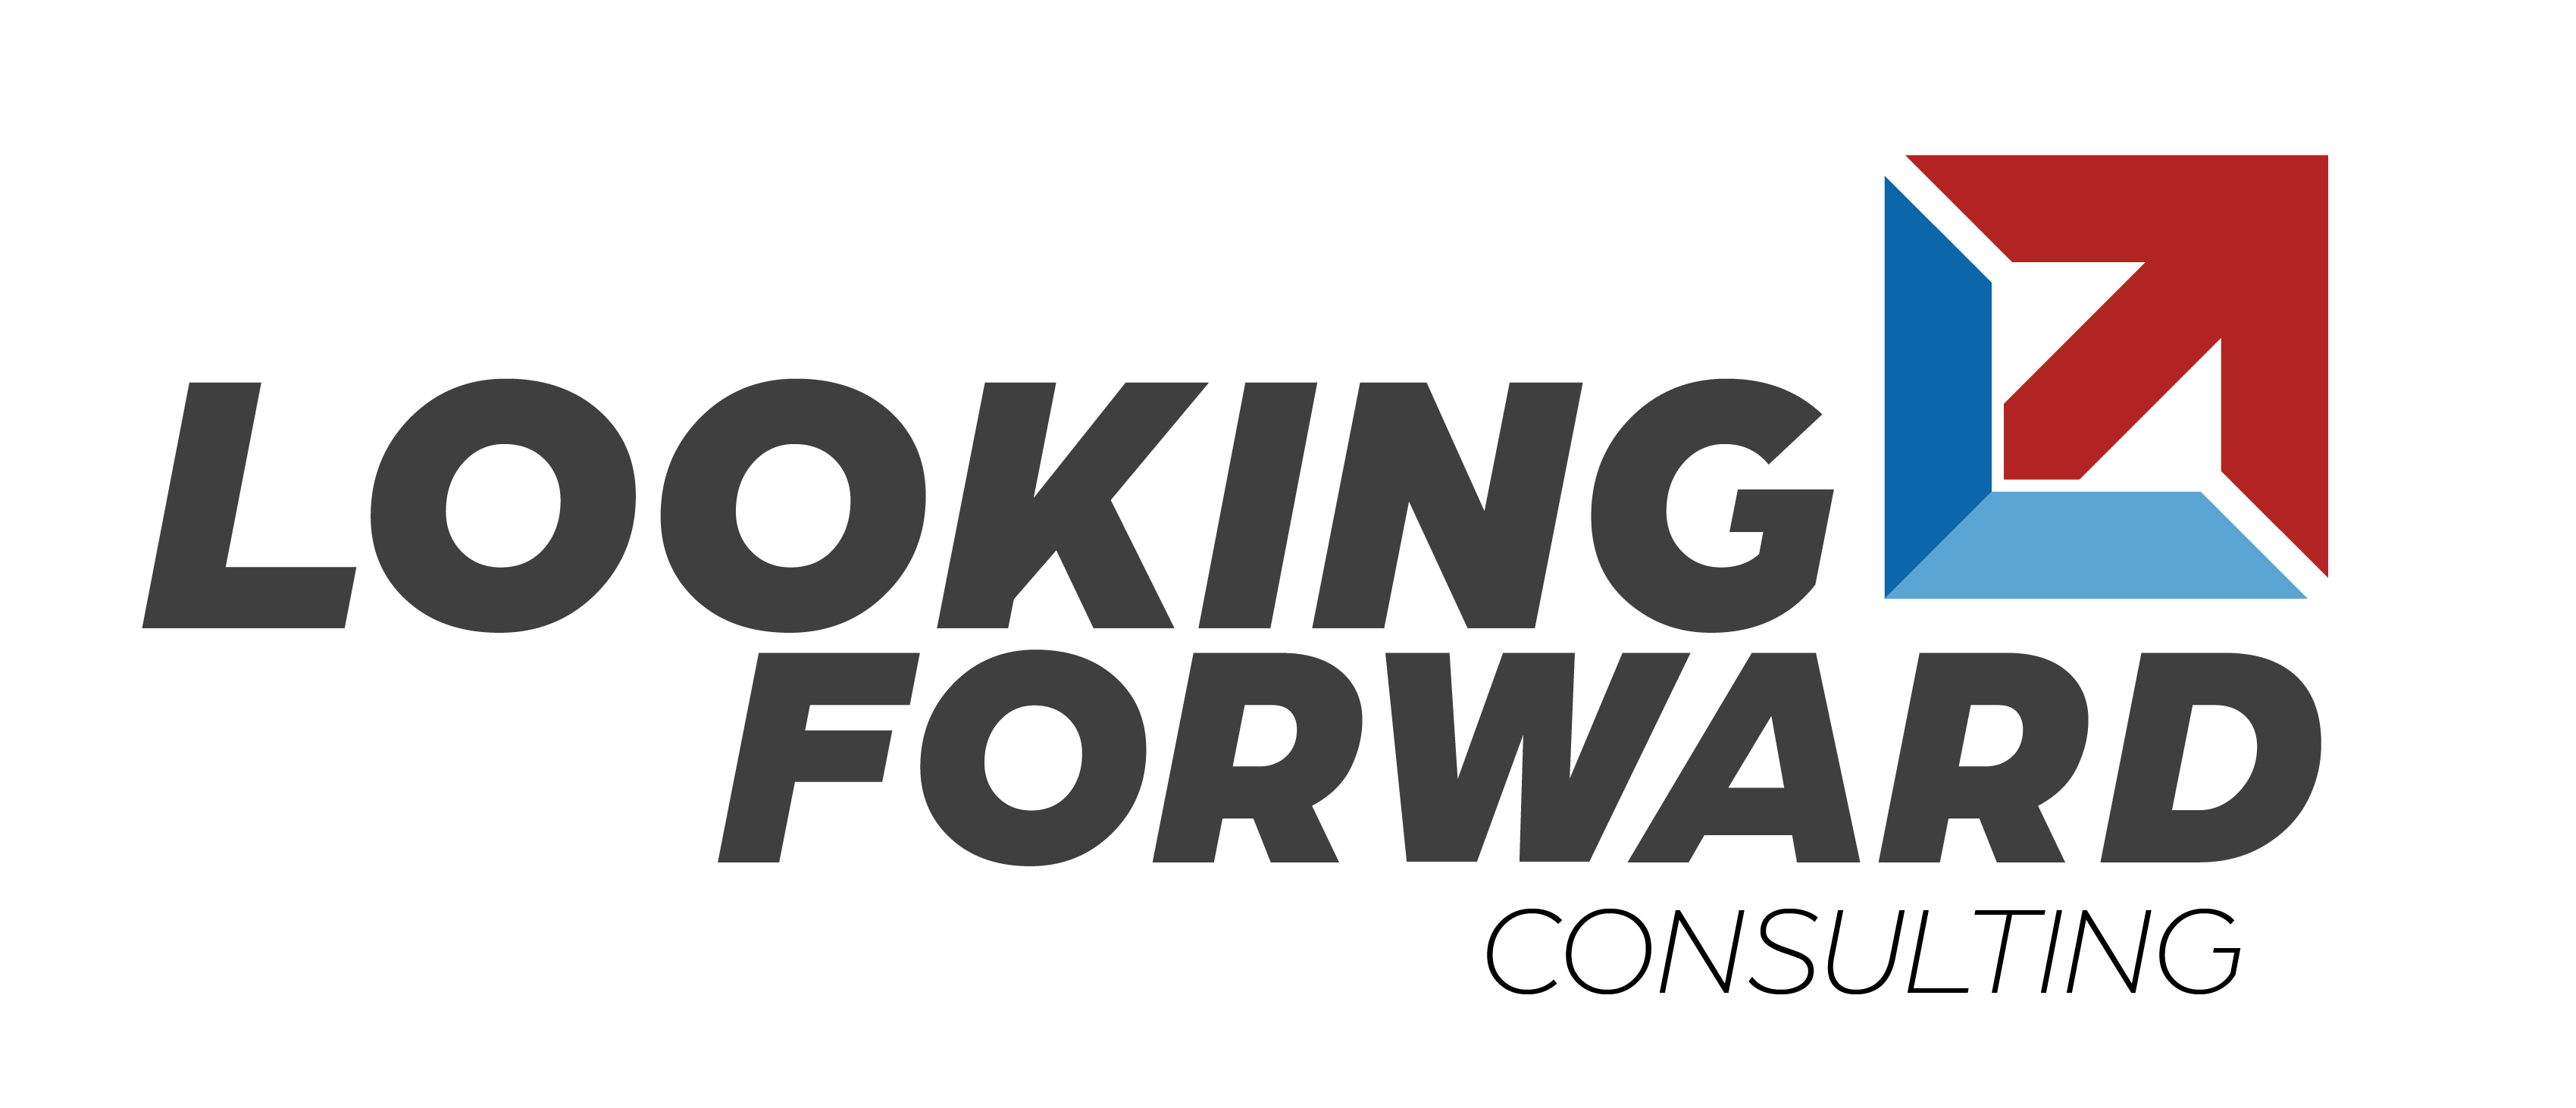 Looking Forward Consulting Provides Innovative Alternatives For Leadership Development